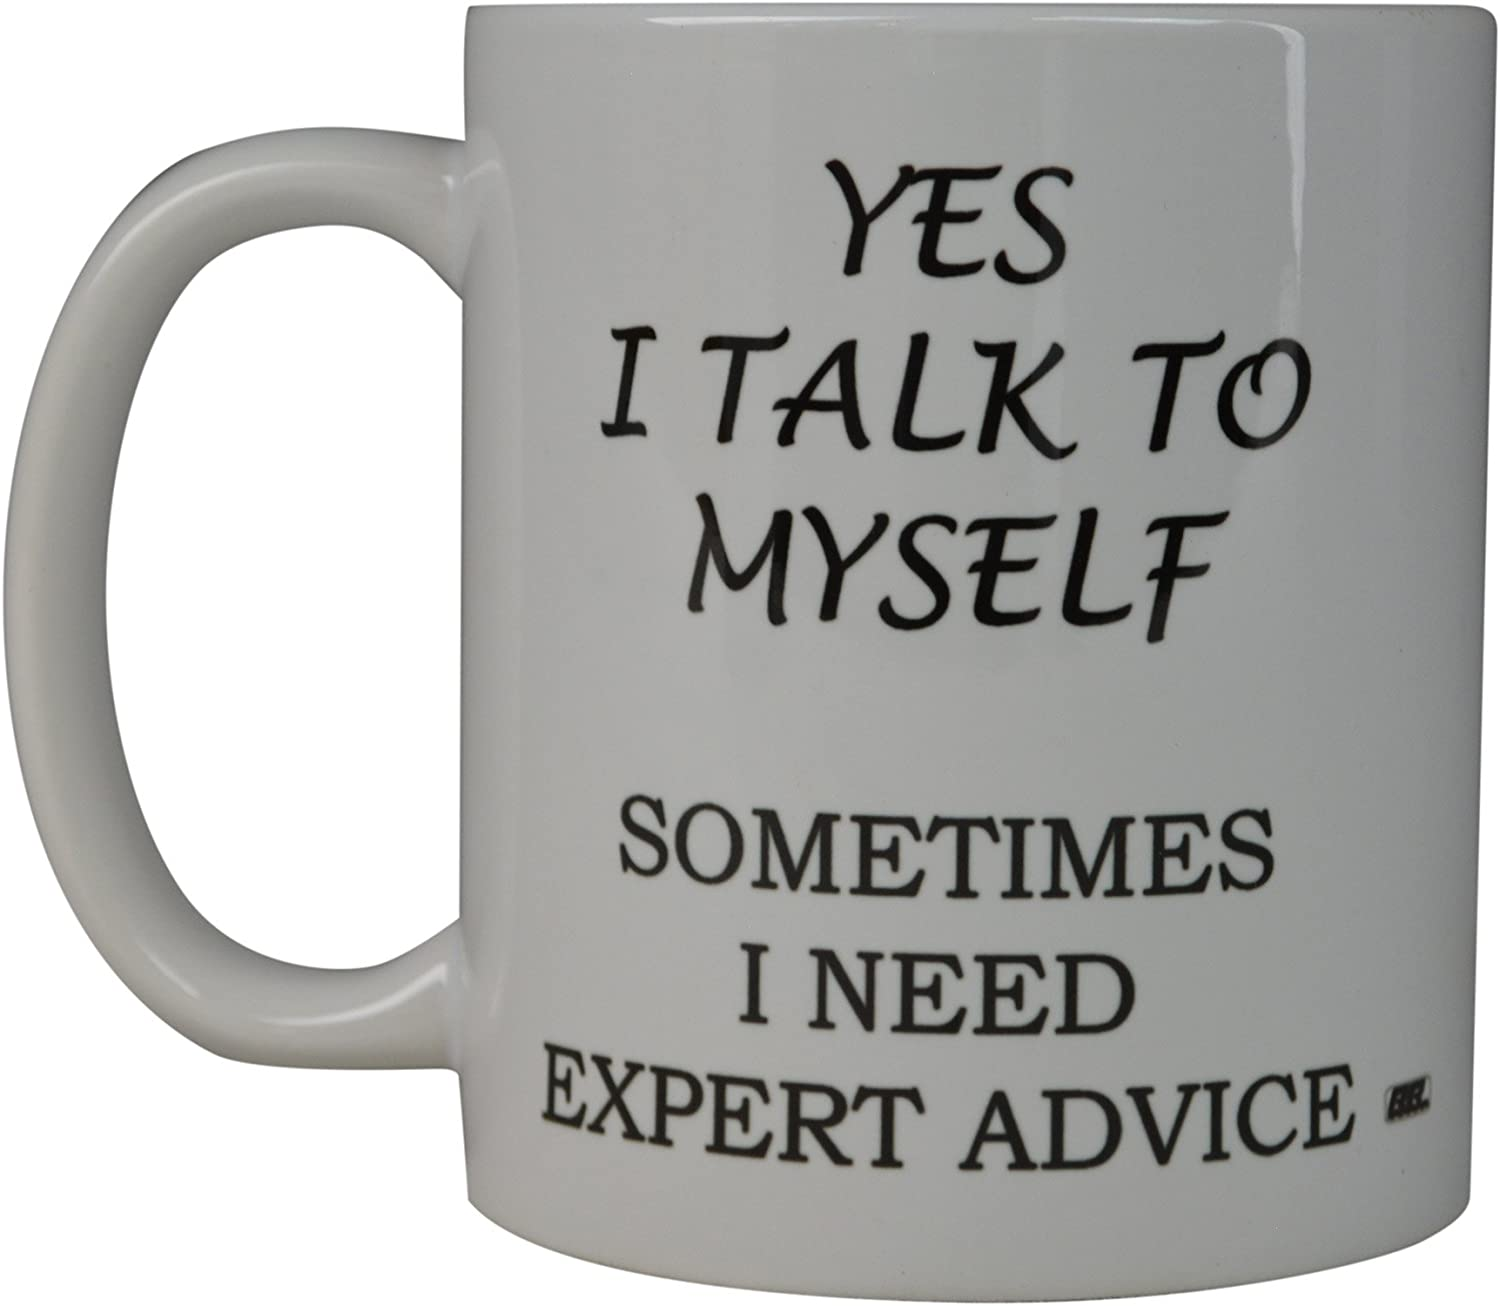 Rogue River Funny Coffee Mug Expert Advice Novelty Cup Great Gift Idea For Office Party Employee Boss Coworkers (Expert)